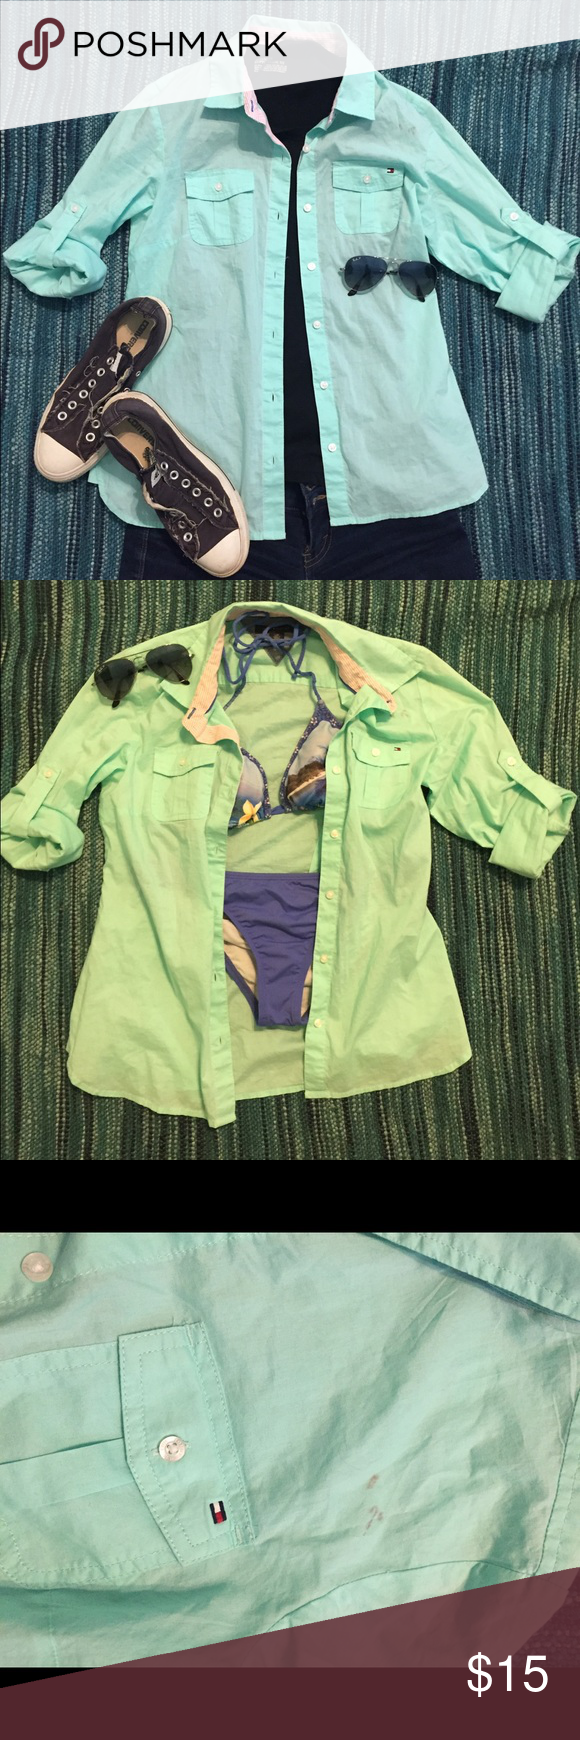 Tommy Hilfiger Button Down Shirt This is a teal/seafoam button down. It's in almost perfect condition but the two stains really put a damper on this expensive cute top. So, it's a steal in you don't mind the stains on front and back. Goes great over a bathing suit. Tommy Hilfiger Tops Button Down Shirts